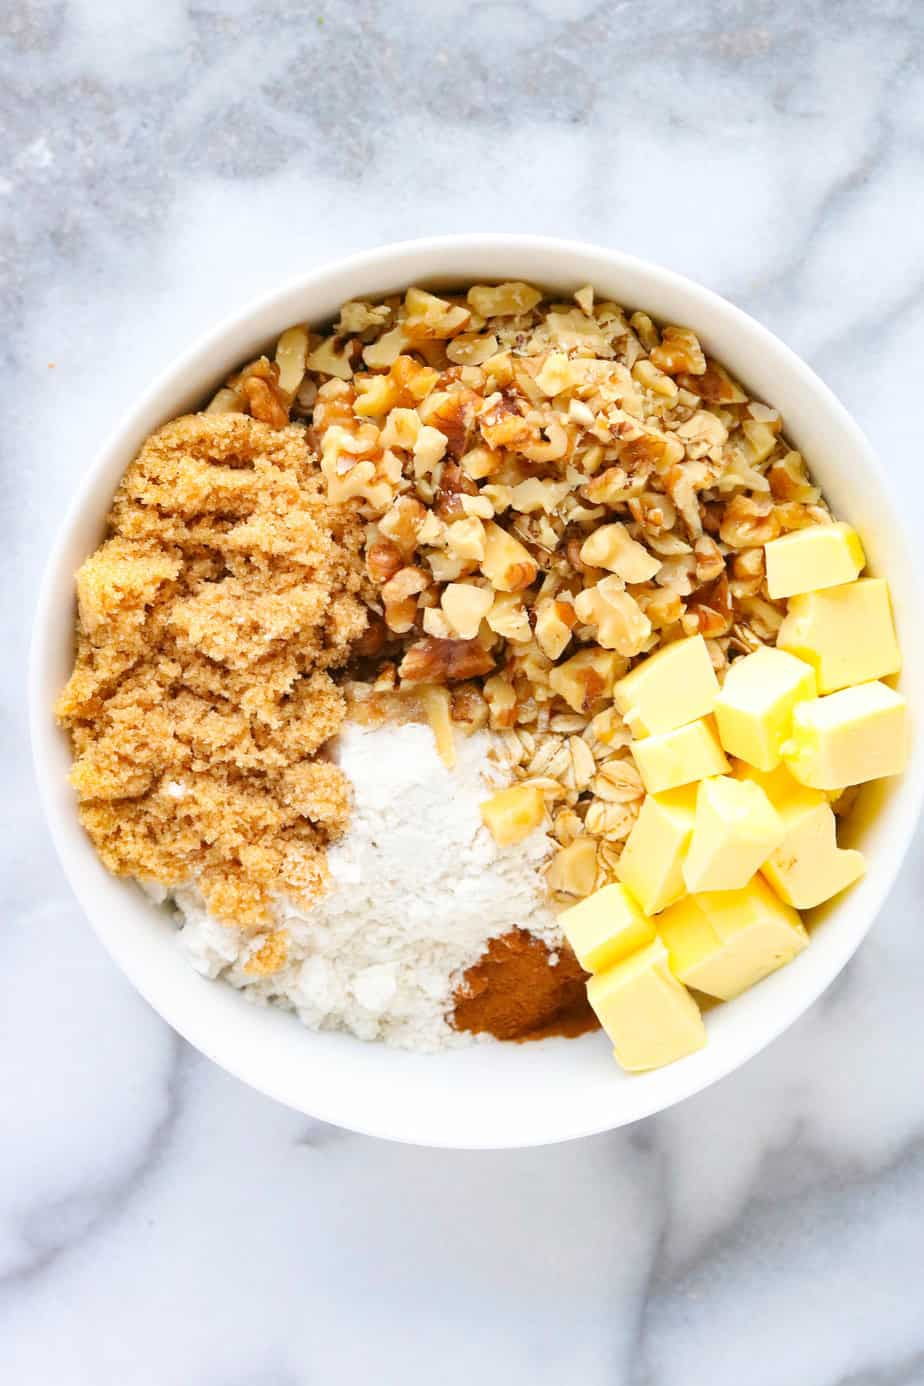 Nut and oat crumble topping ingredients in a white bowl